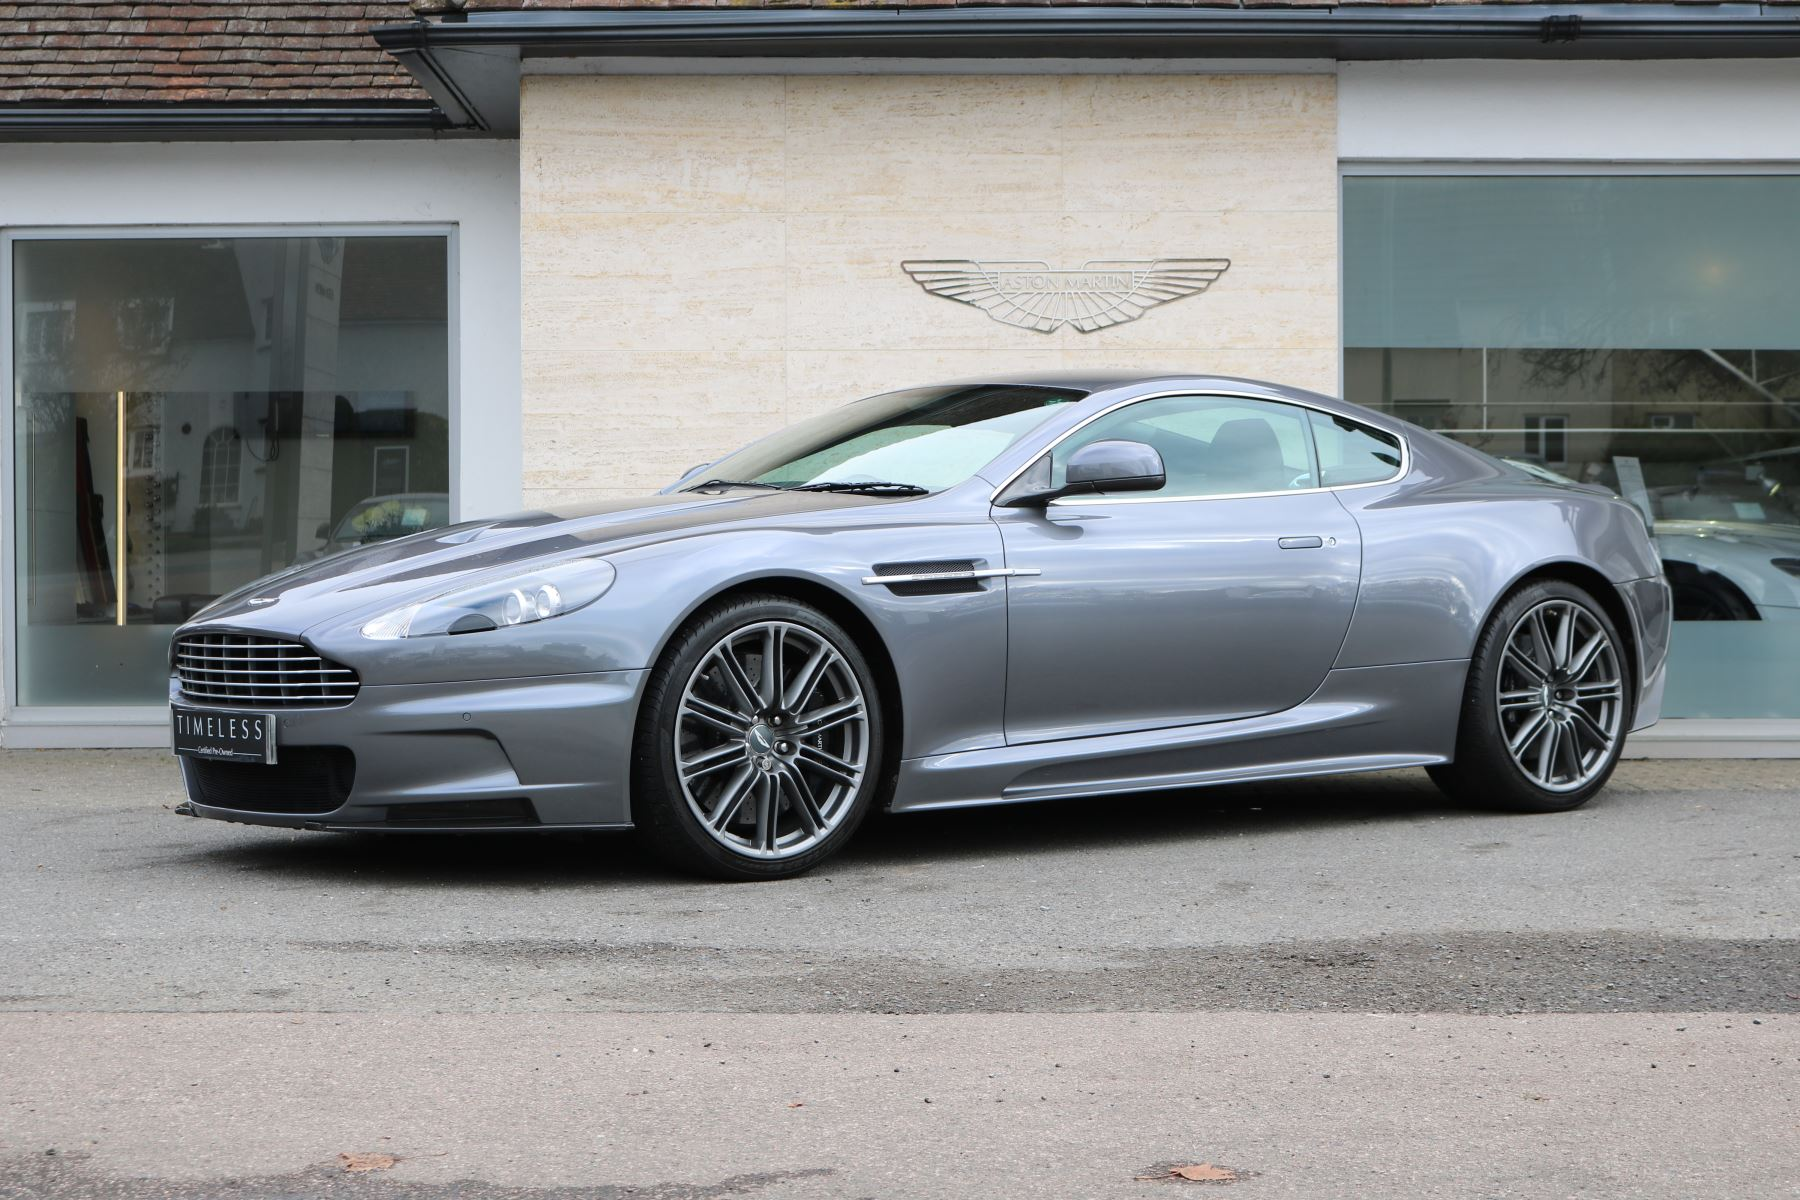 Aston Martin DBS V12 2dr Touchtronic 5.9 Automatic 3 door Coupe (2010) image